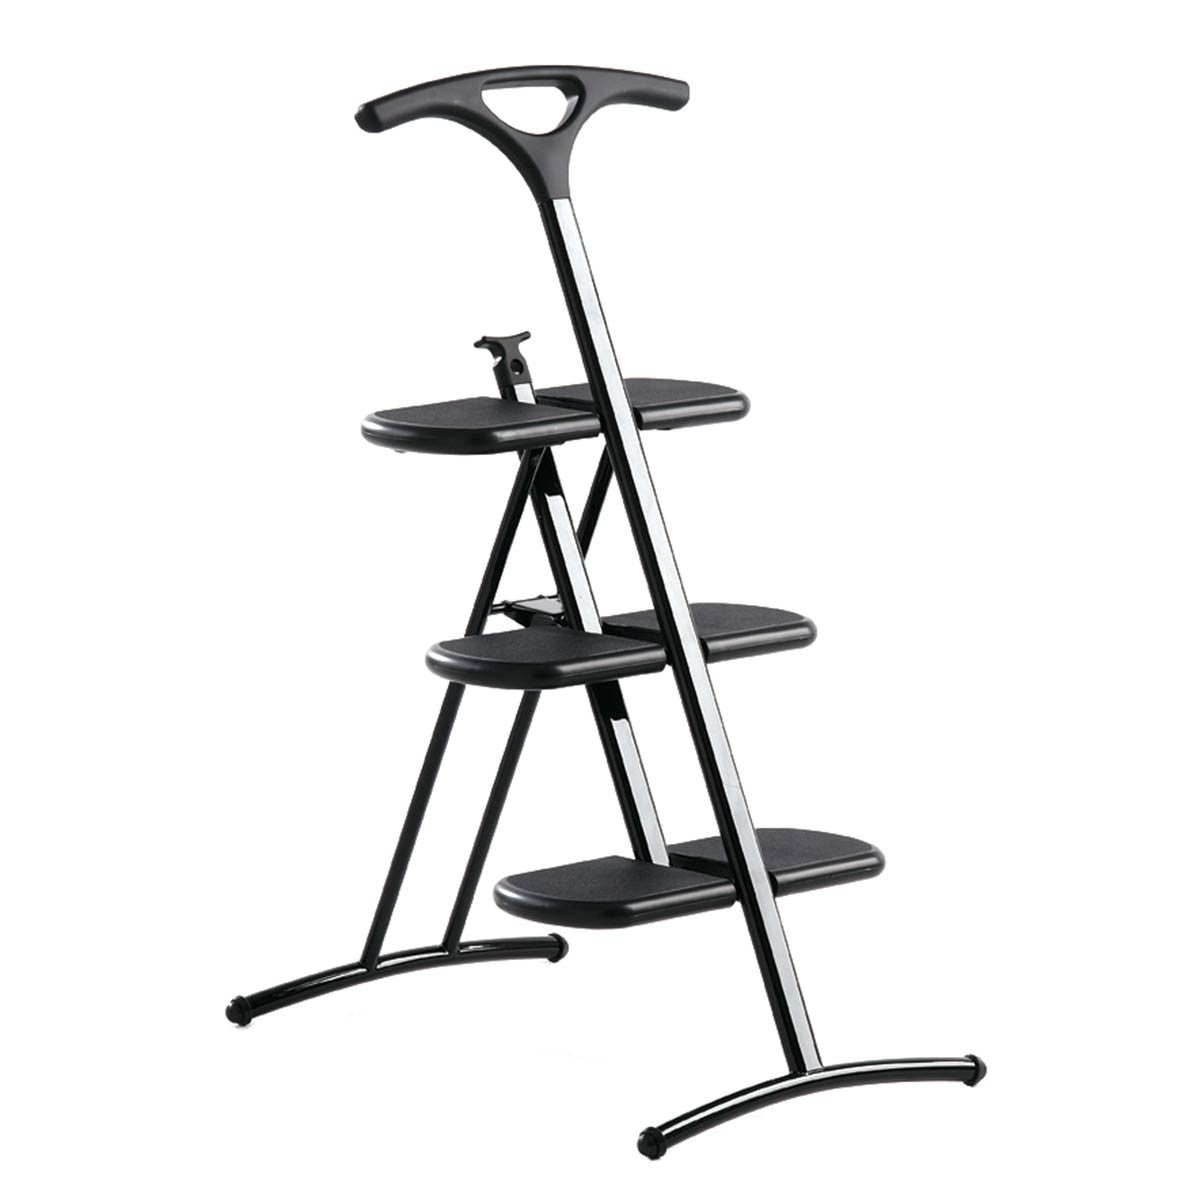 Kartell 700009 Tiramisu\' Scaletta, Nero: Amazon.it: Casa e cucina